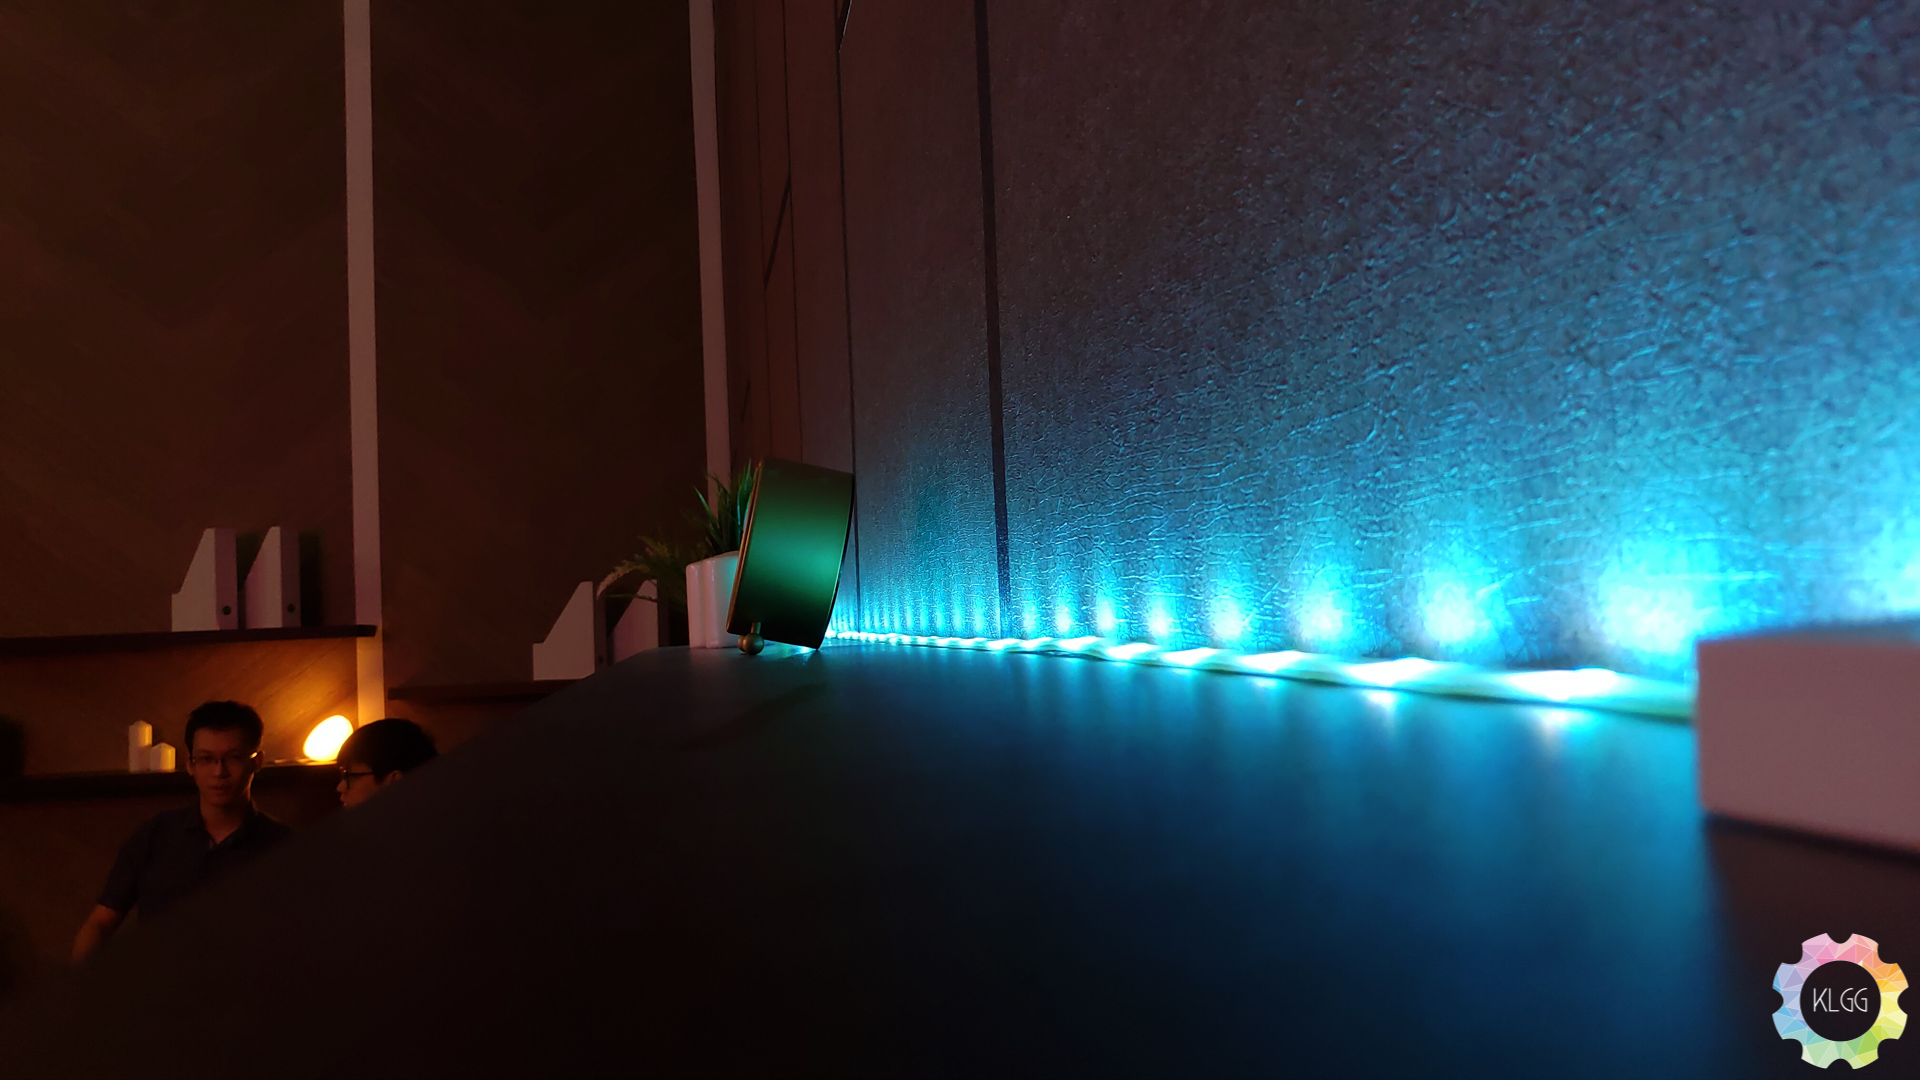 Signify shows off the Philips Hue and the advancements that